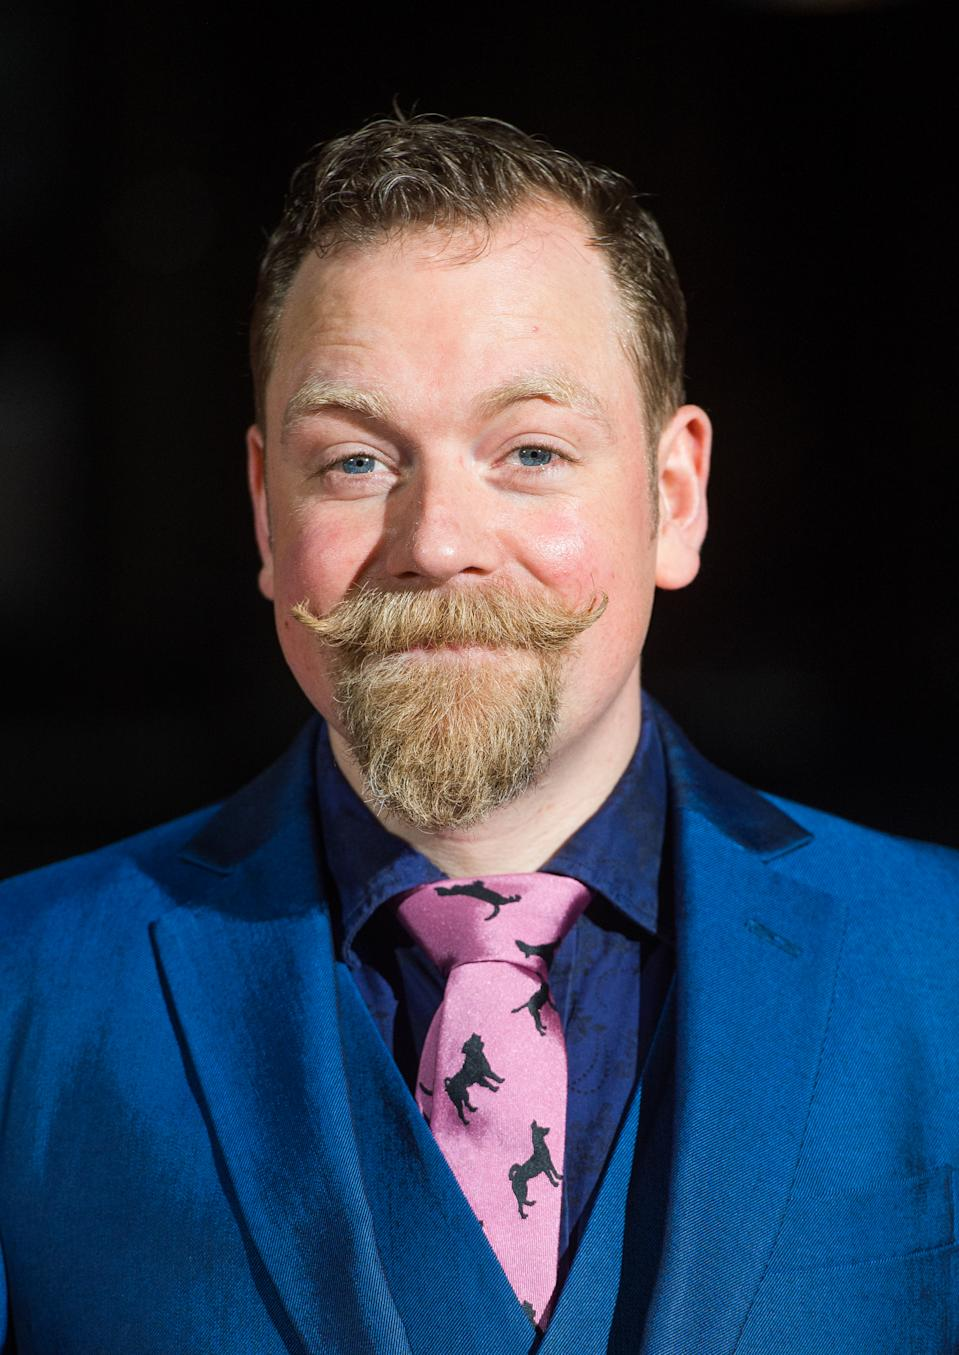 LONDON, ENGLAND - MARCH 12: Rufus Hound attends the BAFTA Games Awards at Tobacco Dock on March 12, 2015 in London, England. (Photo by Samir Hussein/WireImage)